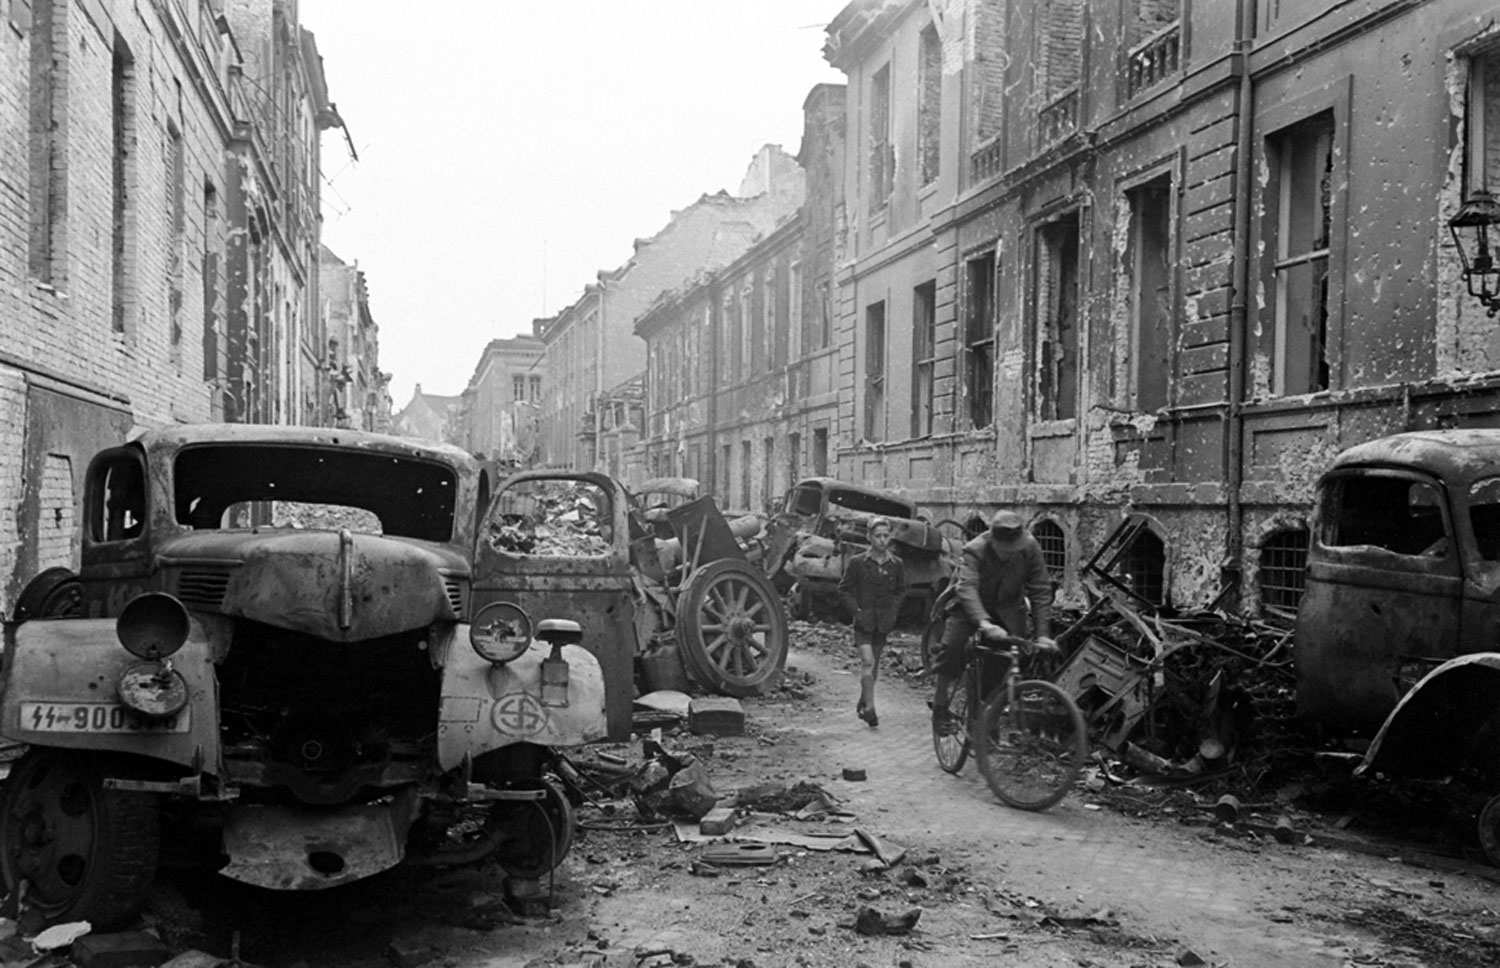 <b>Not published in LIFE.</b>  Oberwallstrasse, in central Berlin, saw some of the most vicious fighting between German and Soviet troops in the spring of 1945